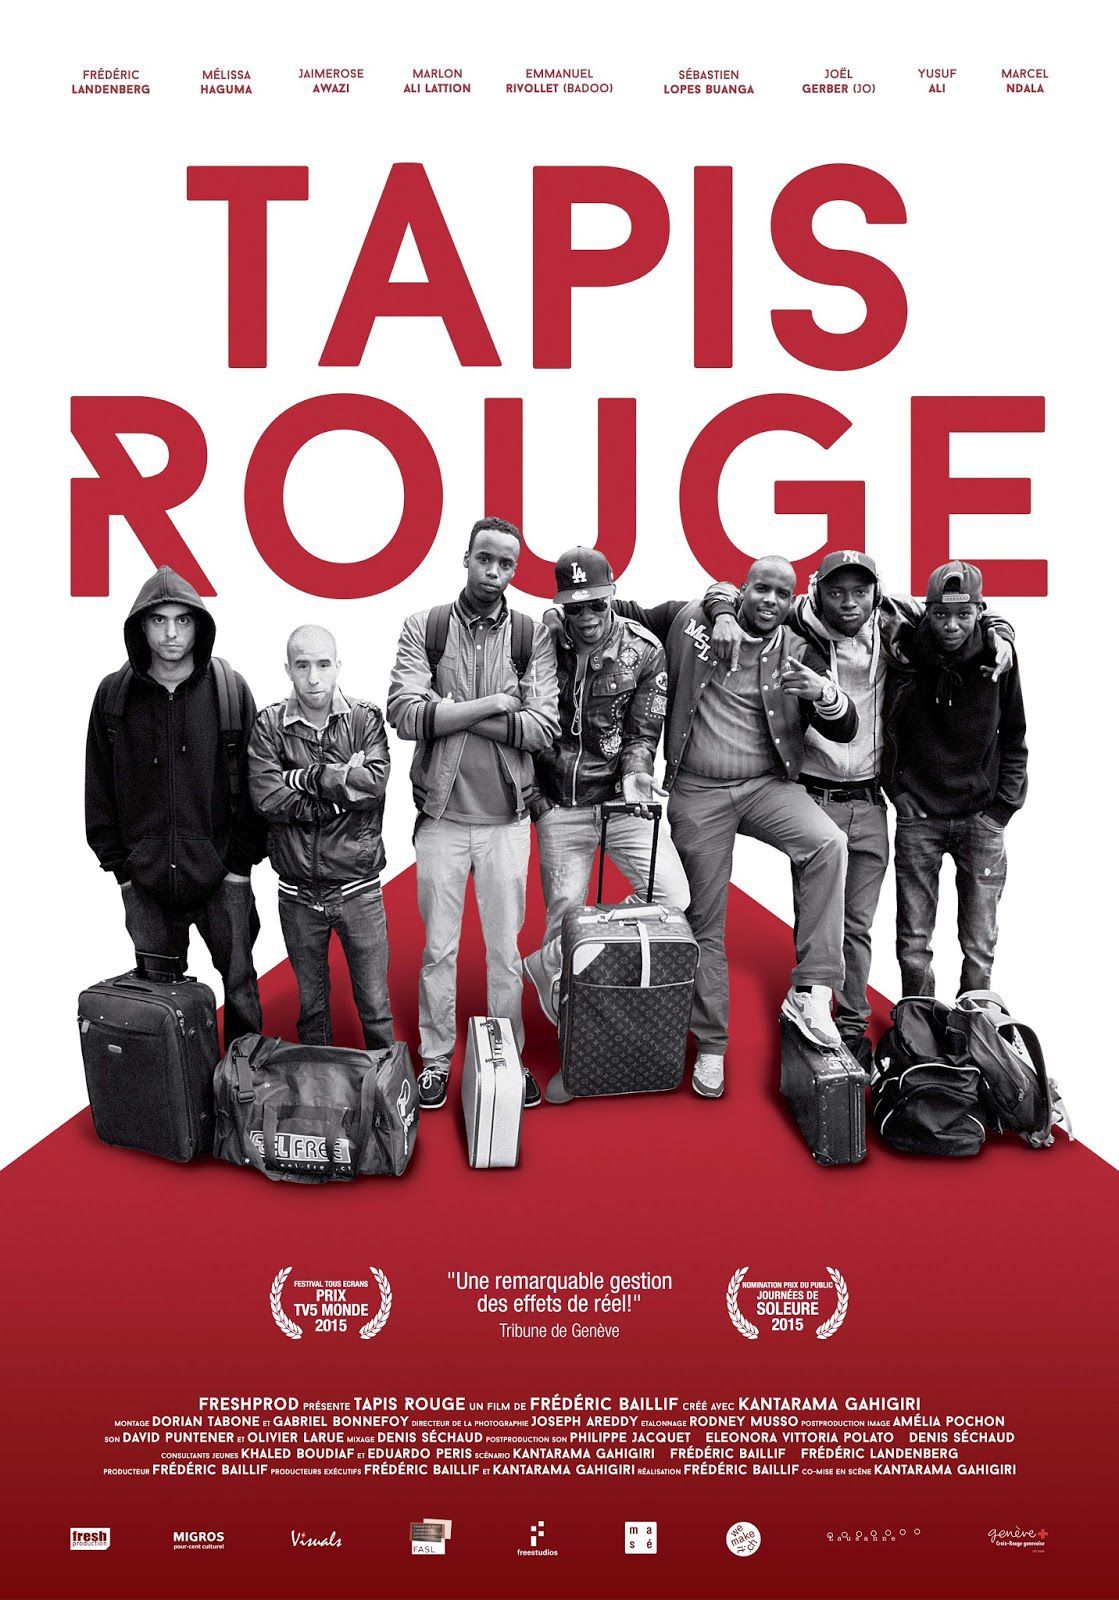 Tapis Rouge - Film (2015) streaming VF gratuit complet